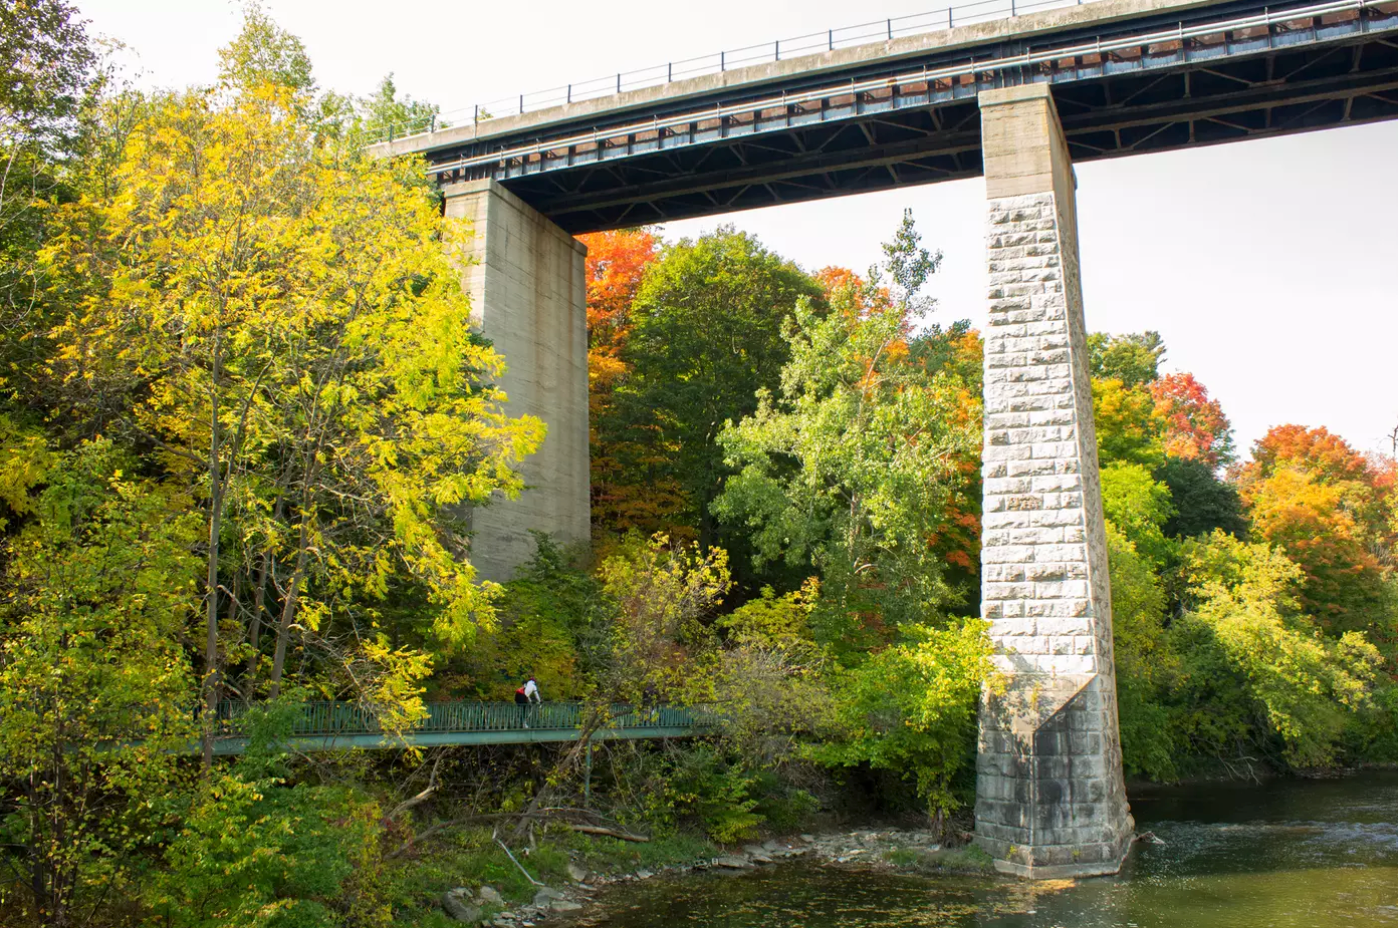 Humber River bridge and footpath in autumn